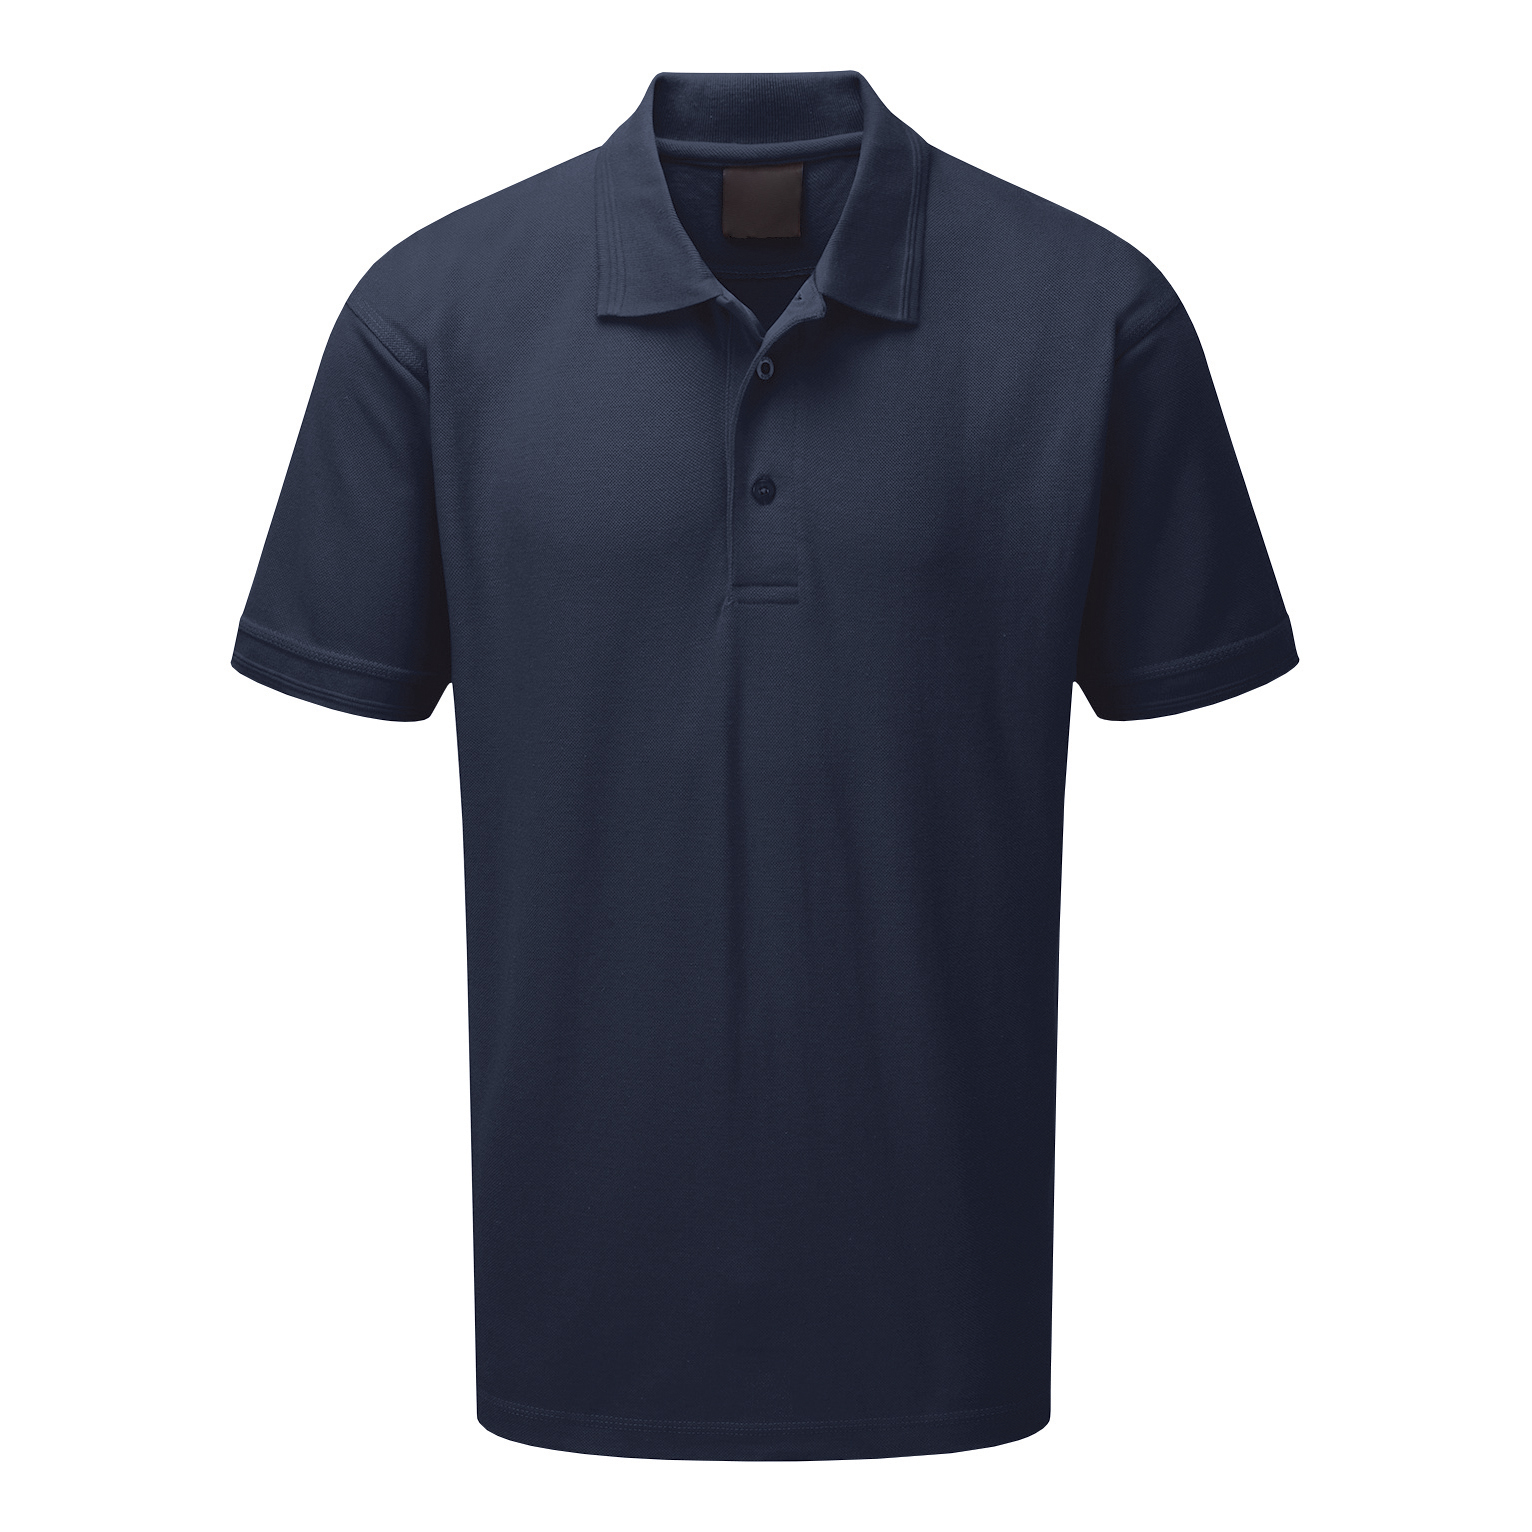 Premium Polo Shirt Triple Button 220gsm Polycotton 5XL Navy Ref CLPKSN5XL *Approx 3 Day Leadtime*